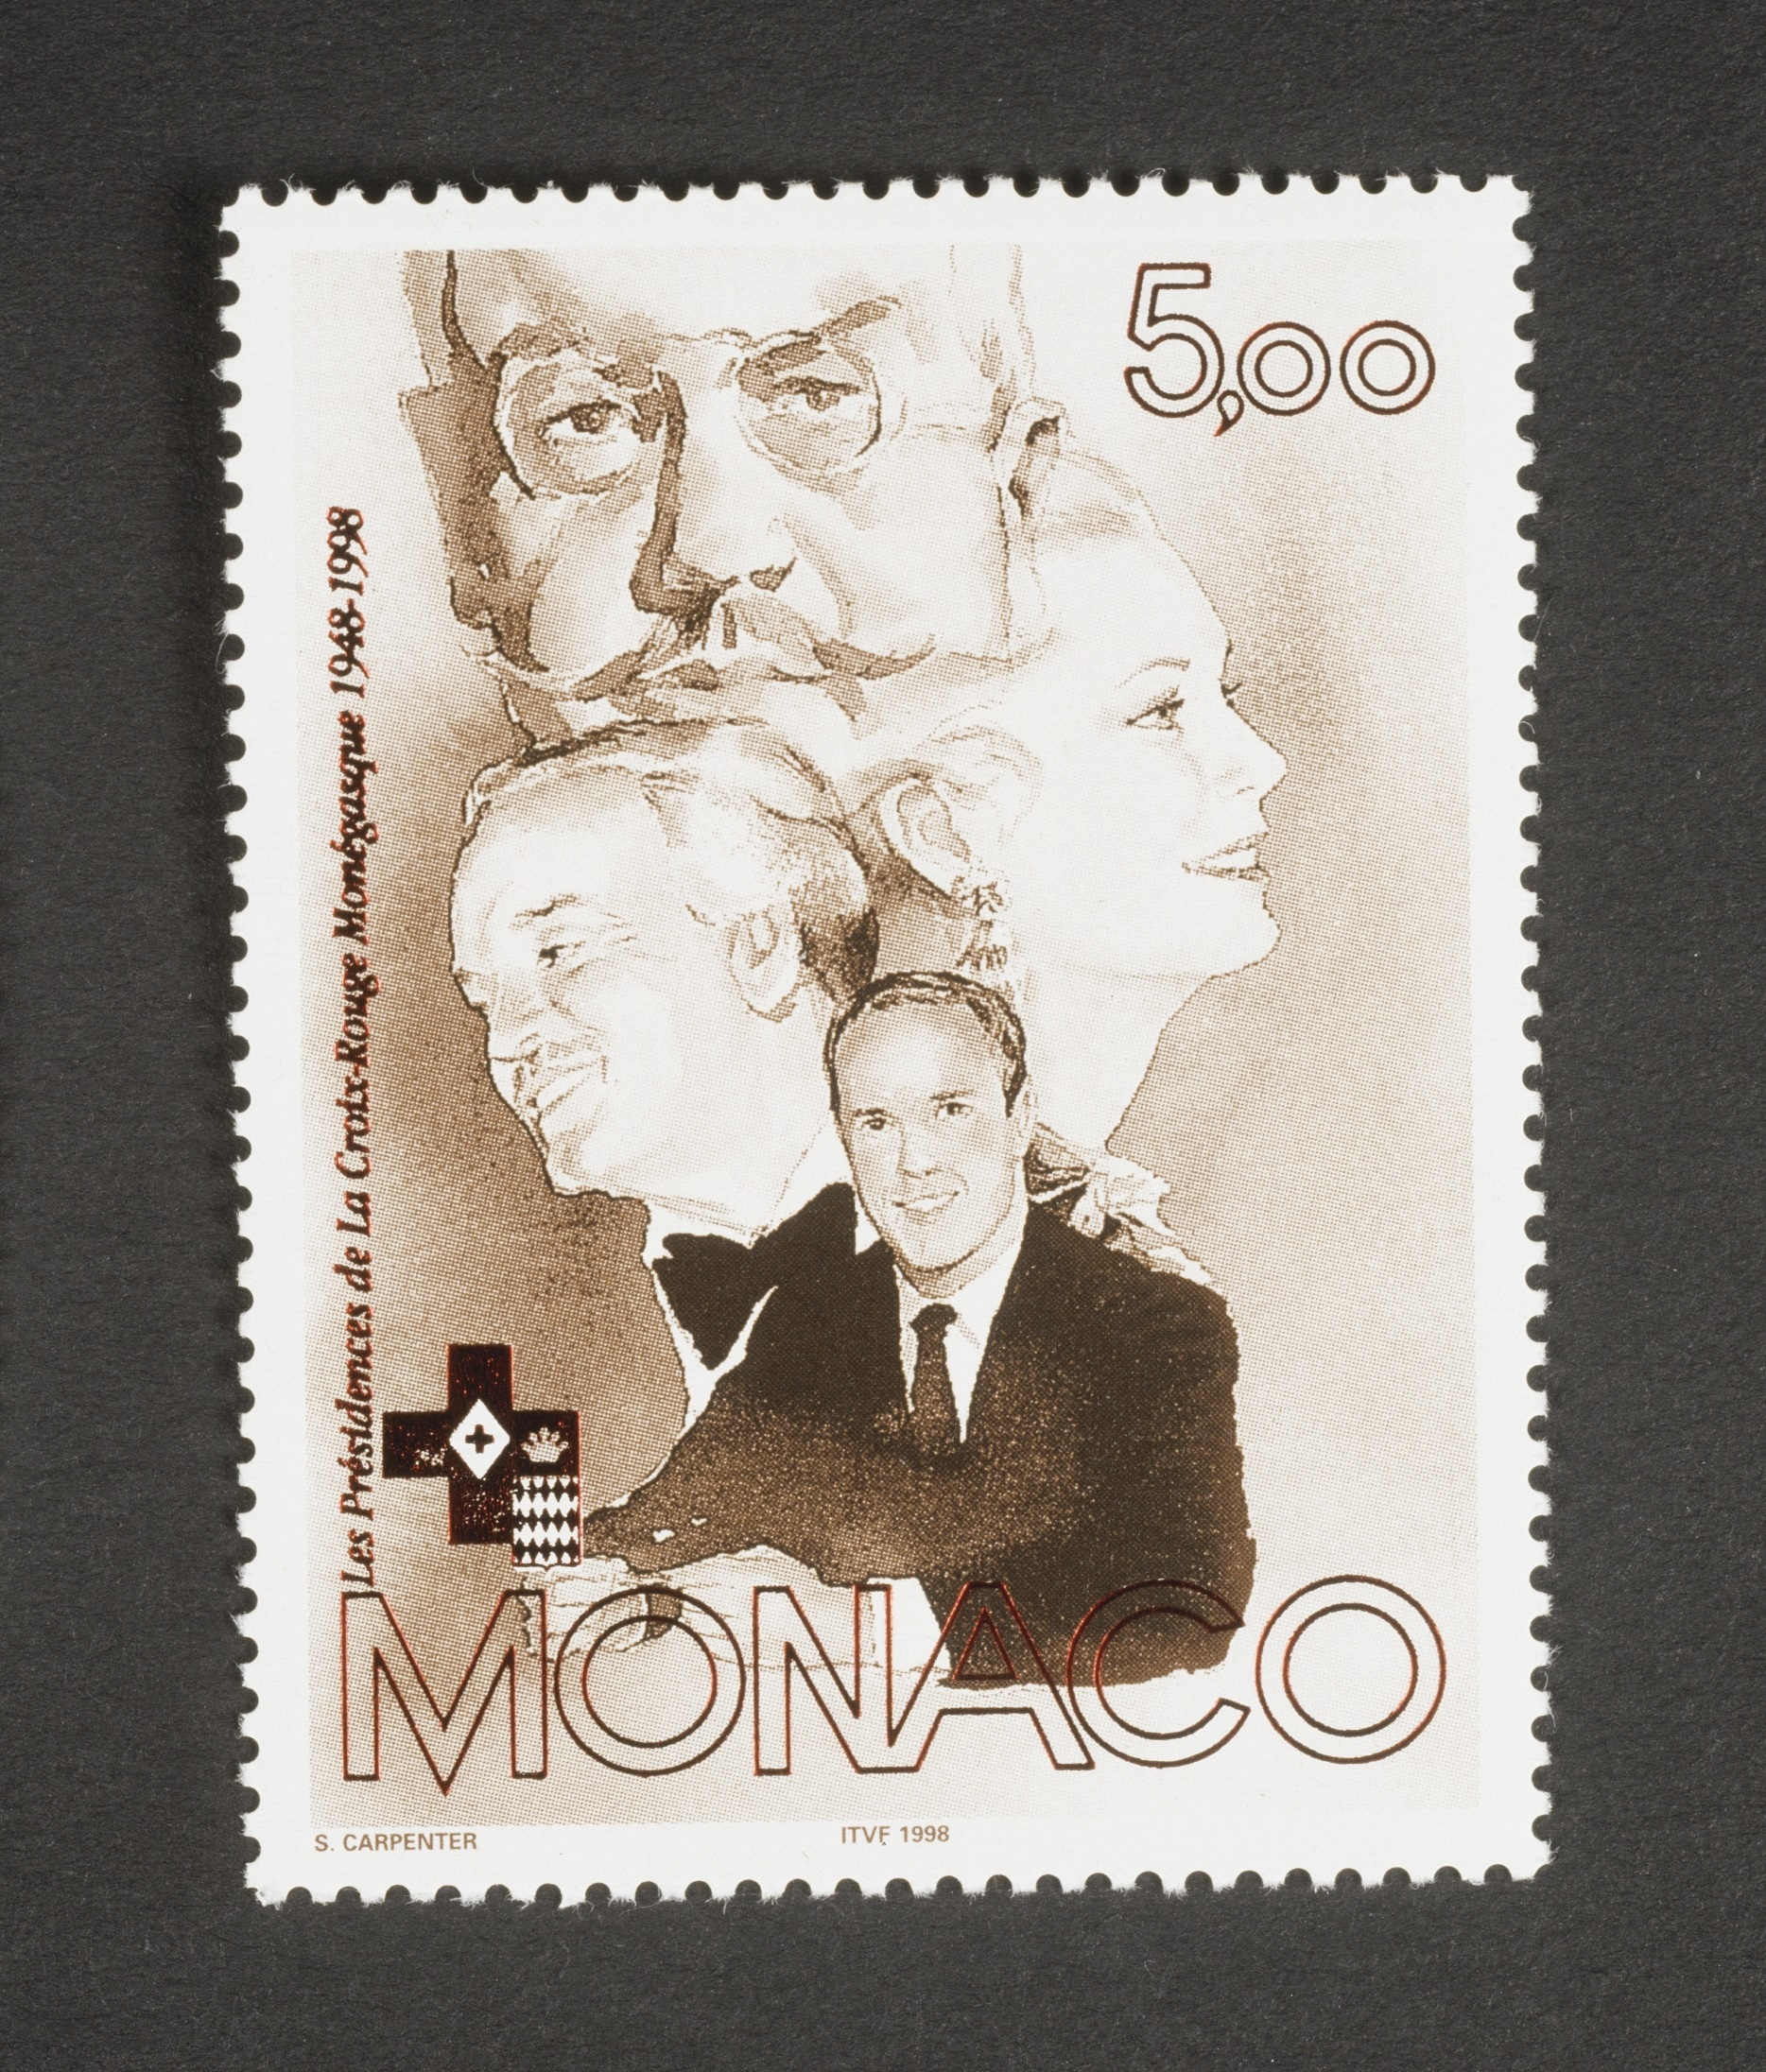 Slide 70 of 70: MONACO - SEPTEMBER 06: Postage stamp commemorating the 50th anniversary of the Red Cross of Monaco, 1998, depicting the portraits of Presidents (Louis II, Rainier III, Princess Grace and Prince Albert II). Monaco, 20th century. Monaco (Photo by DeAgostini/Getty Images)